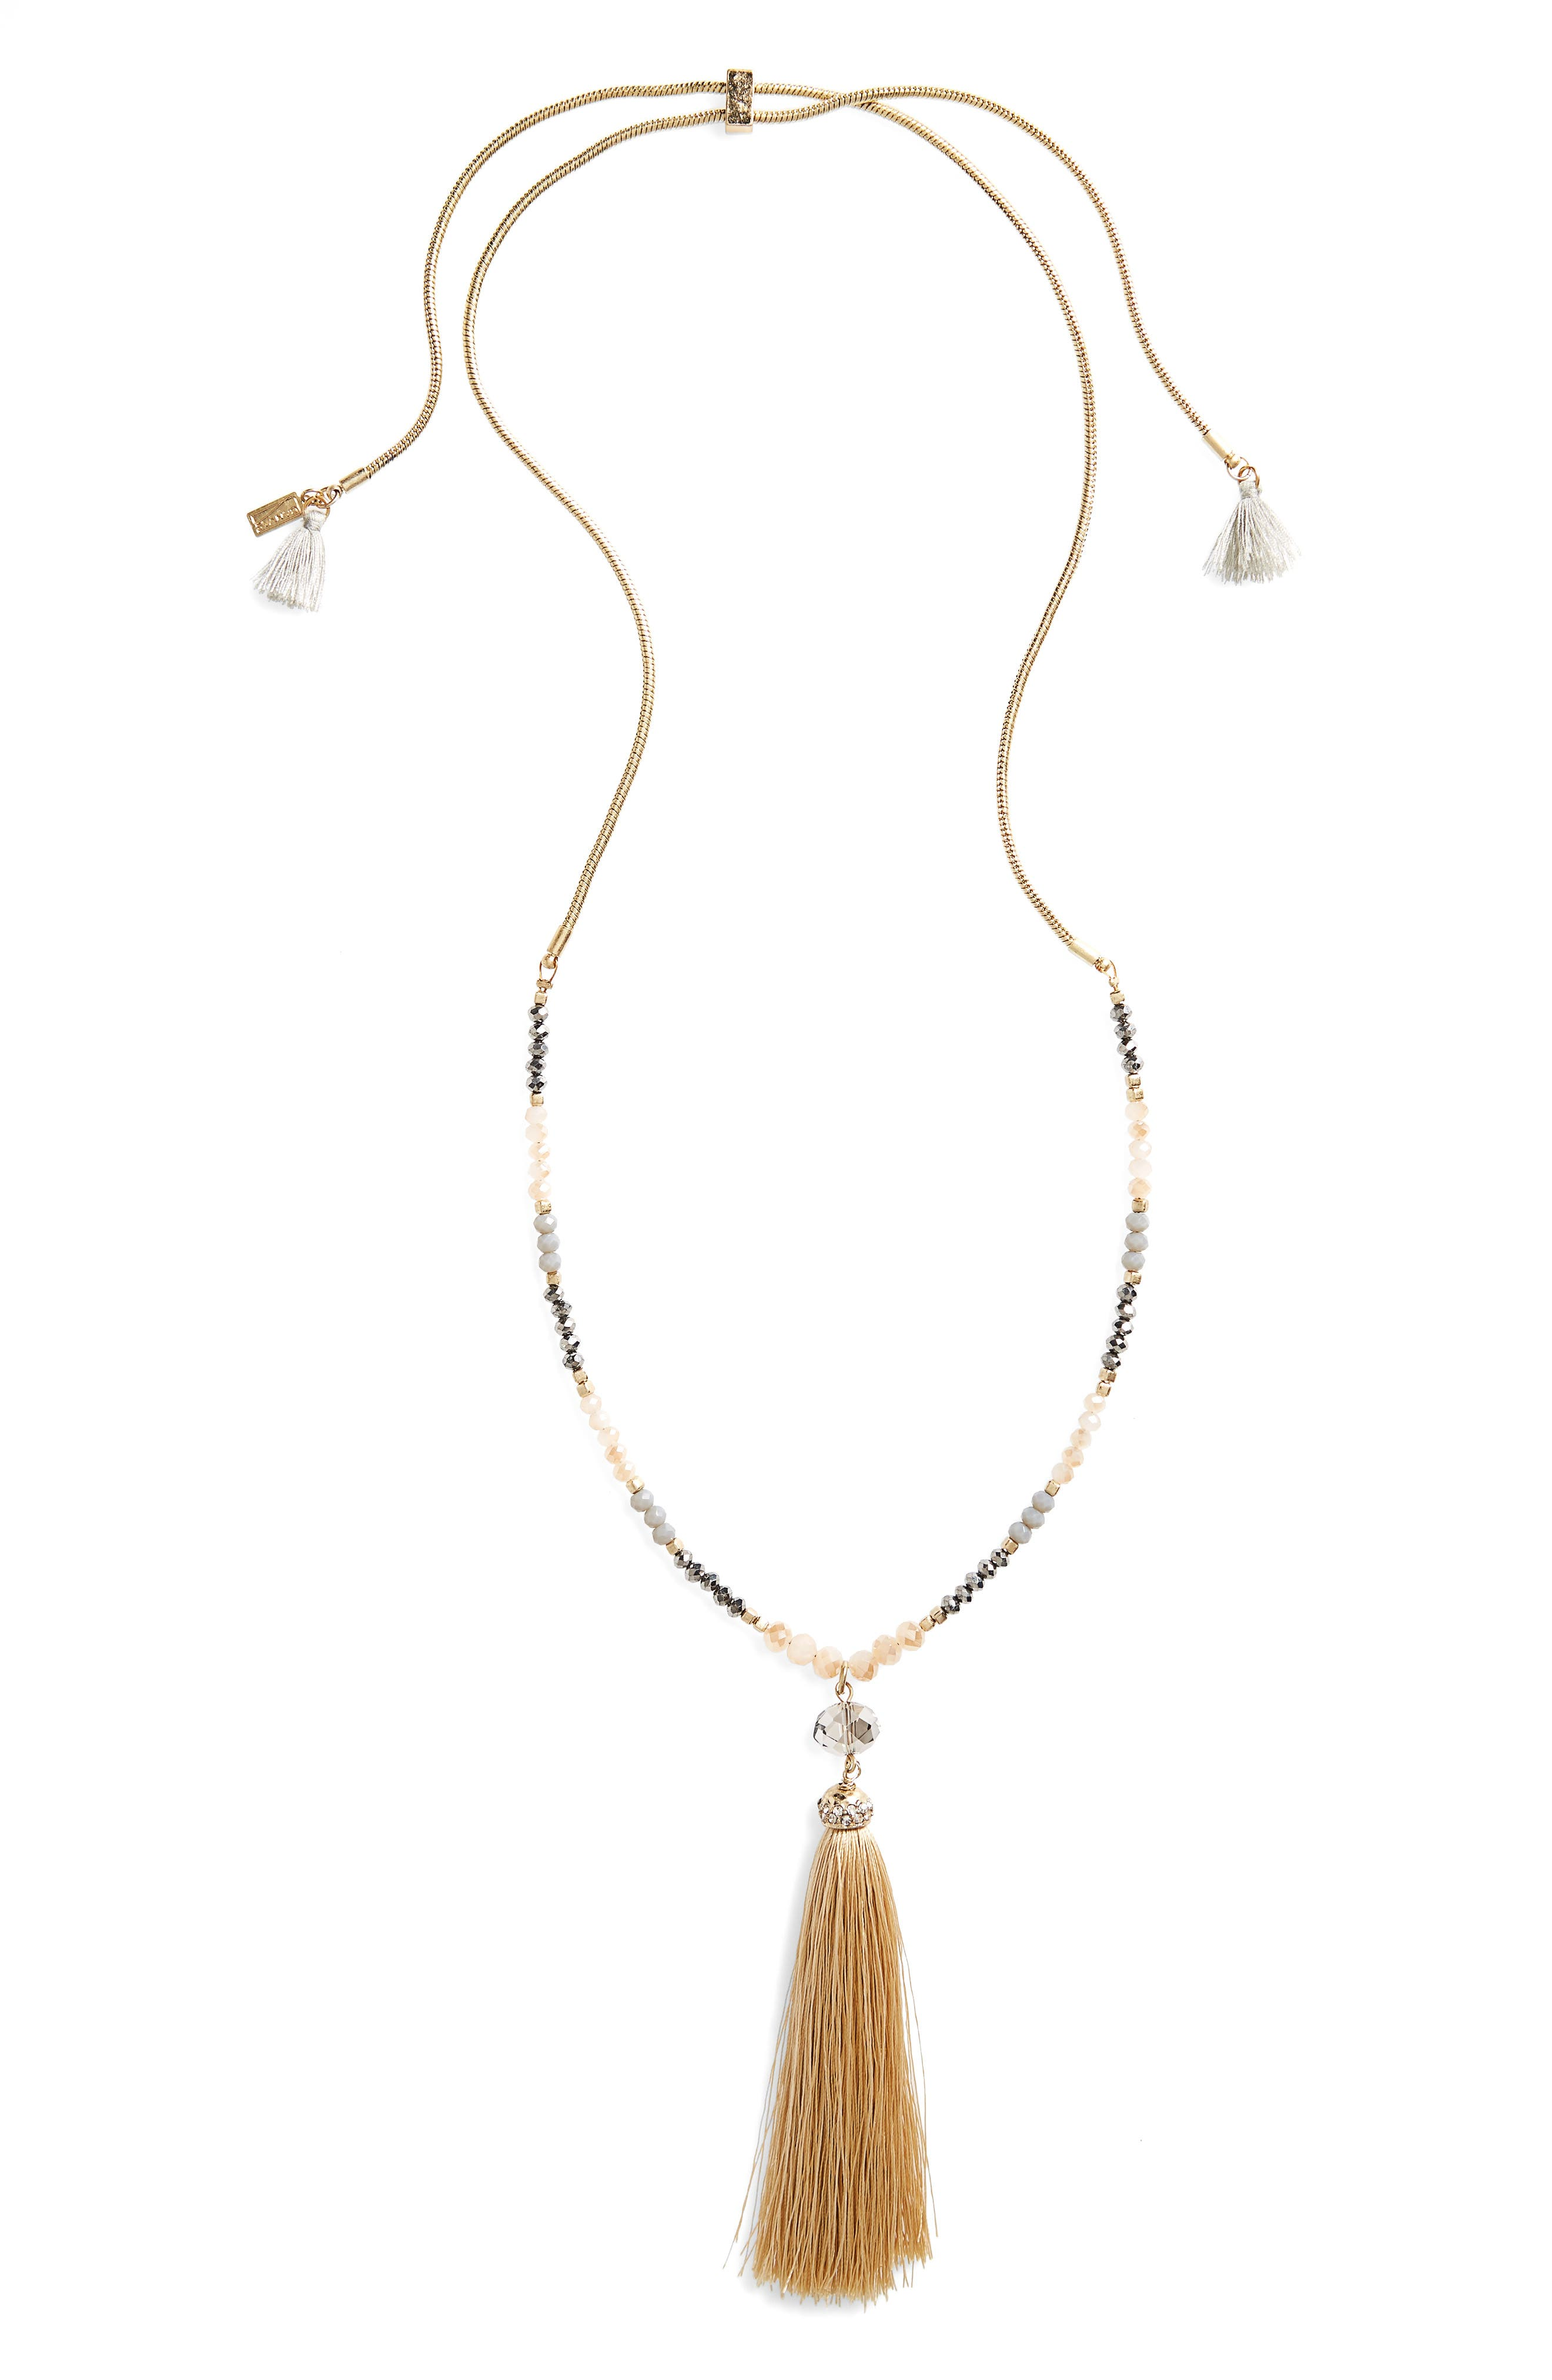 Adjustable Chain Necklace,                         Main,                         color, 250